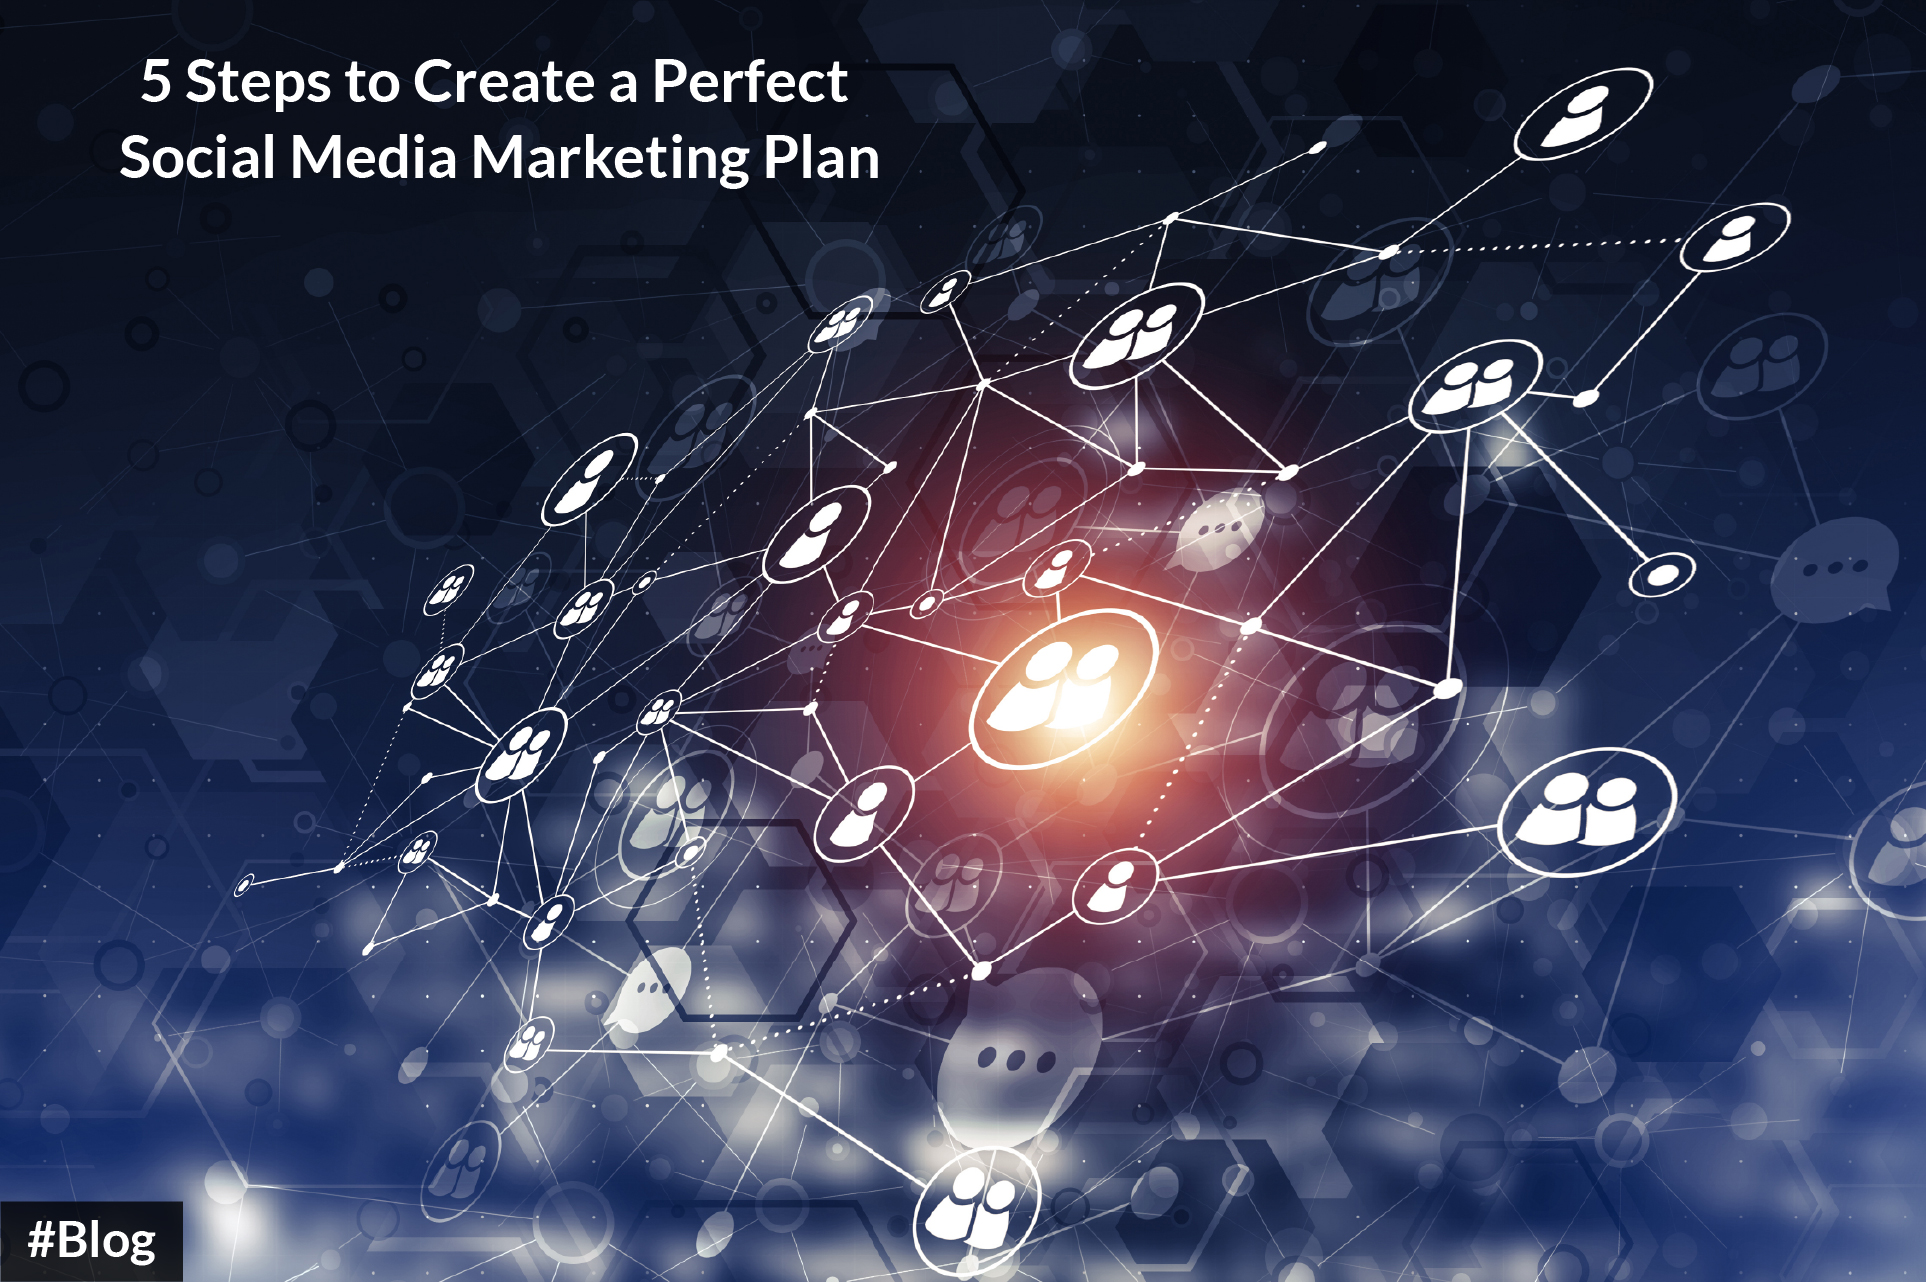 5 Steps to Create a Perfect Social Media Marketing Plan